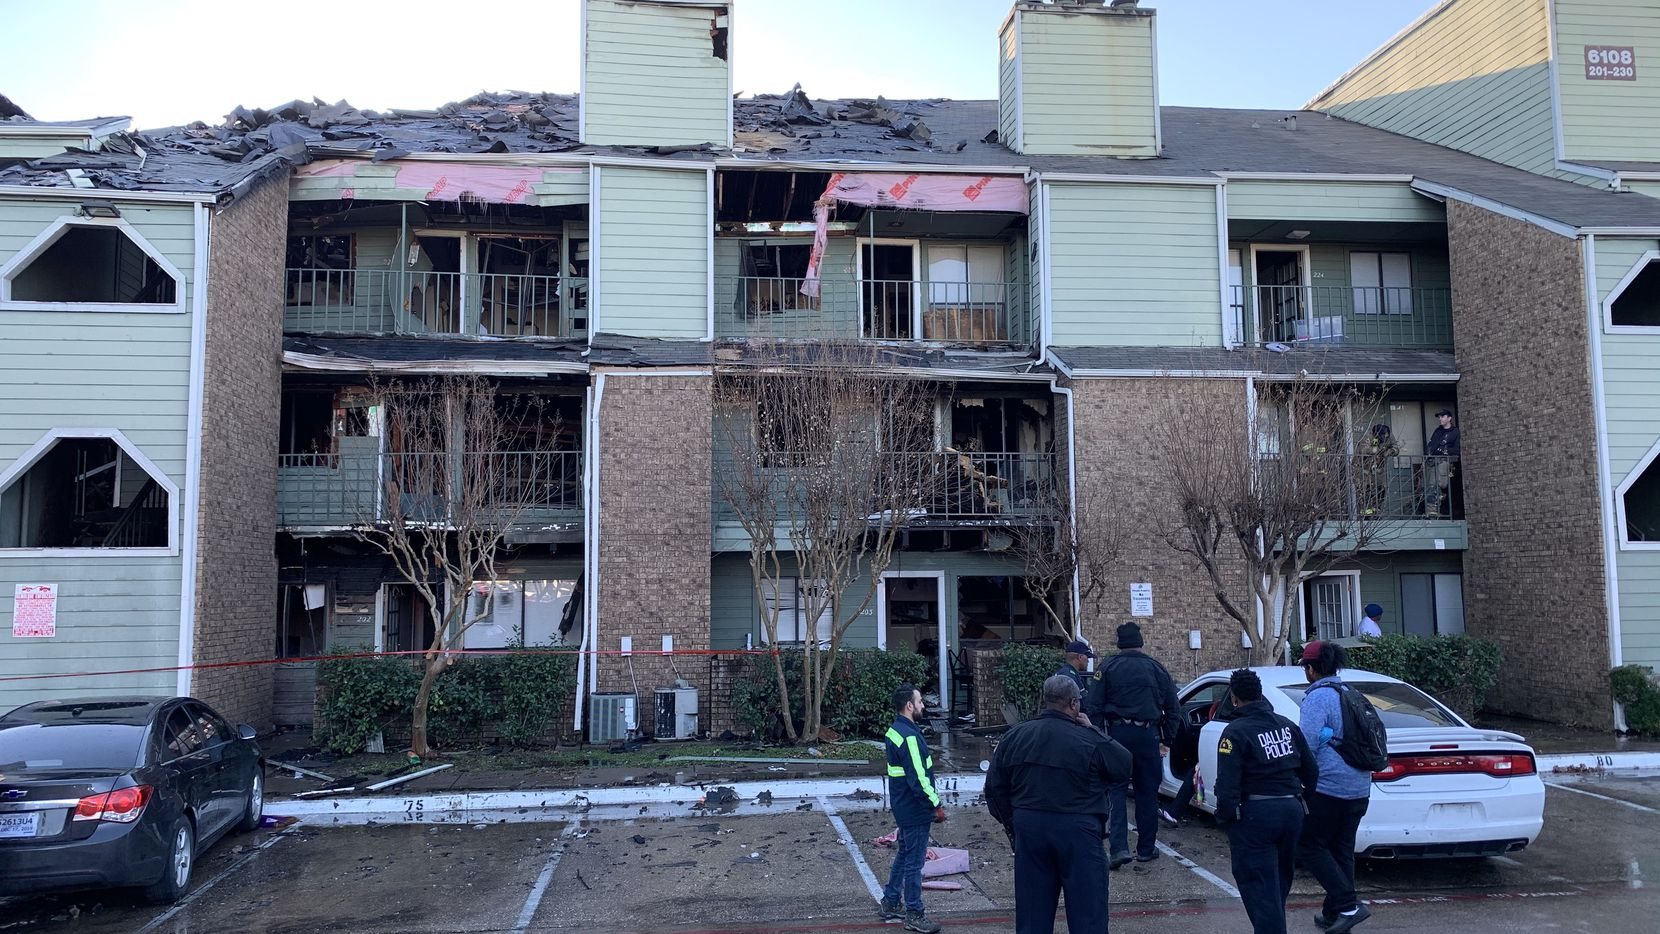 Dallas Fire-Rescue works the aftermath of a fire at the Sable Ridge Condominiums at 6108 Abrams Road on Wednesday morning, Dec. 4, 2019, in Dallas.